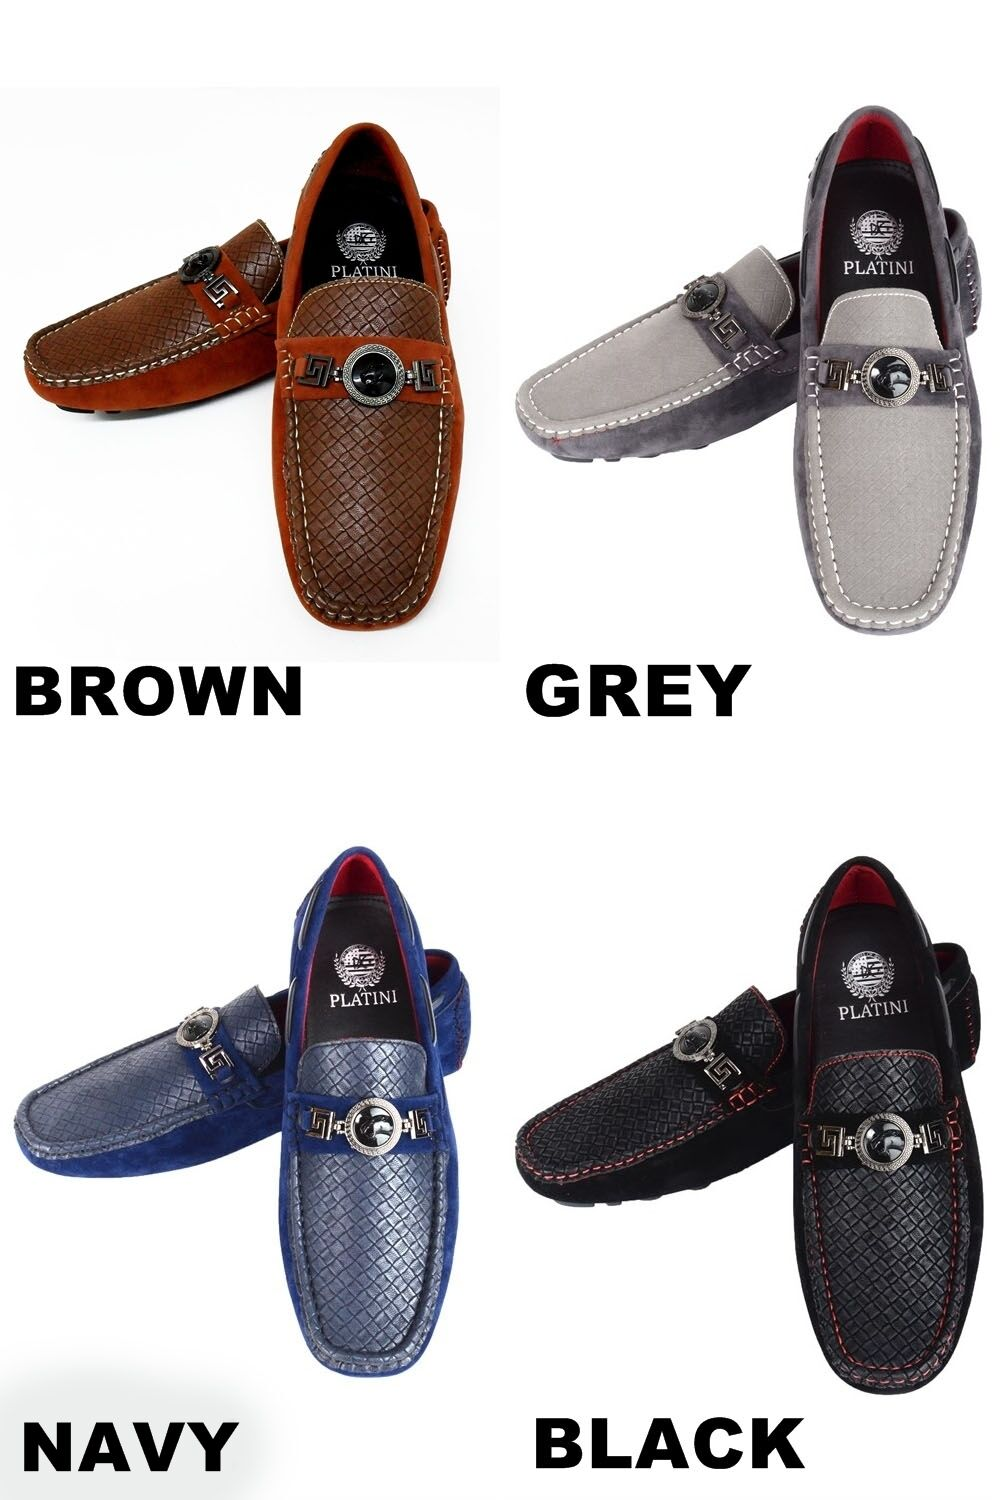 Men's PLATINI black grey navy brown suede loafers PSH3503-6 slip on shoes style PSH3503-6 loafers 080c64